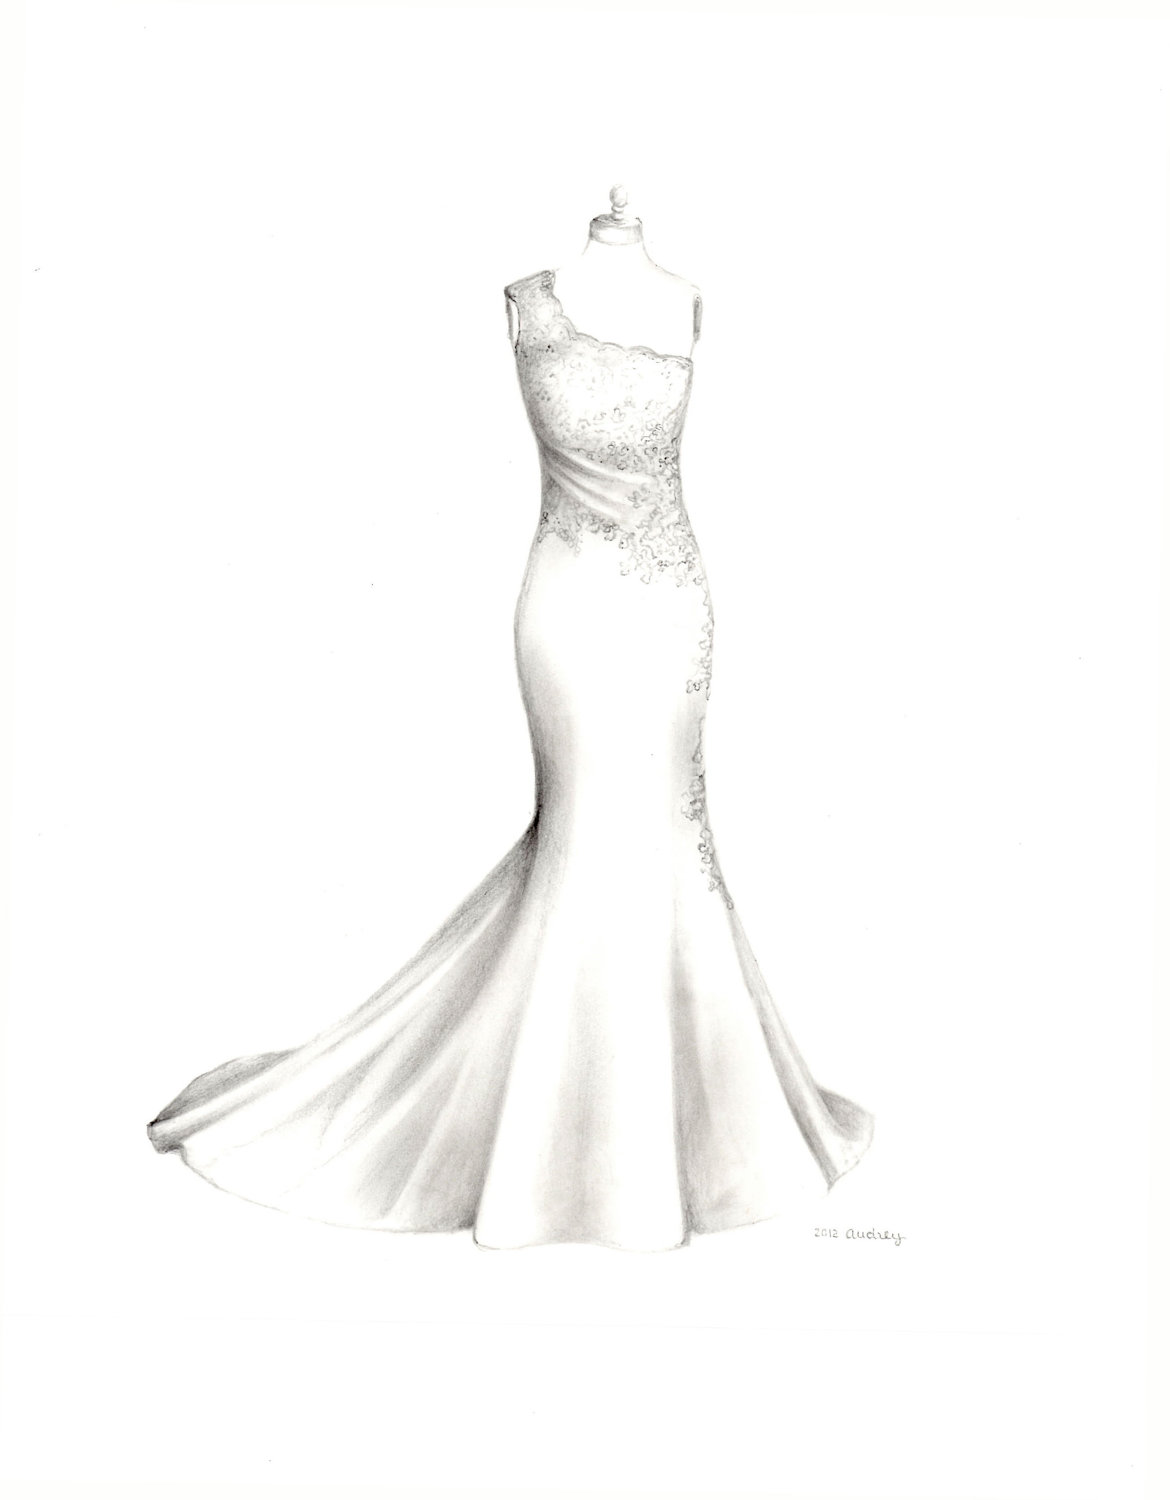 Drawn wedding dress #5